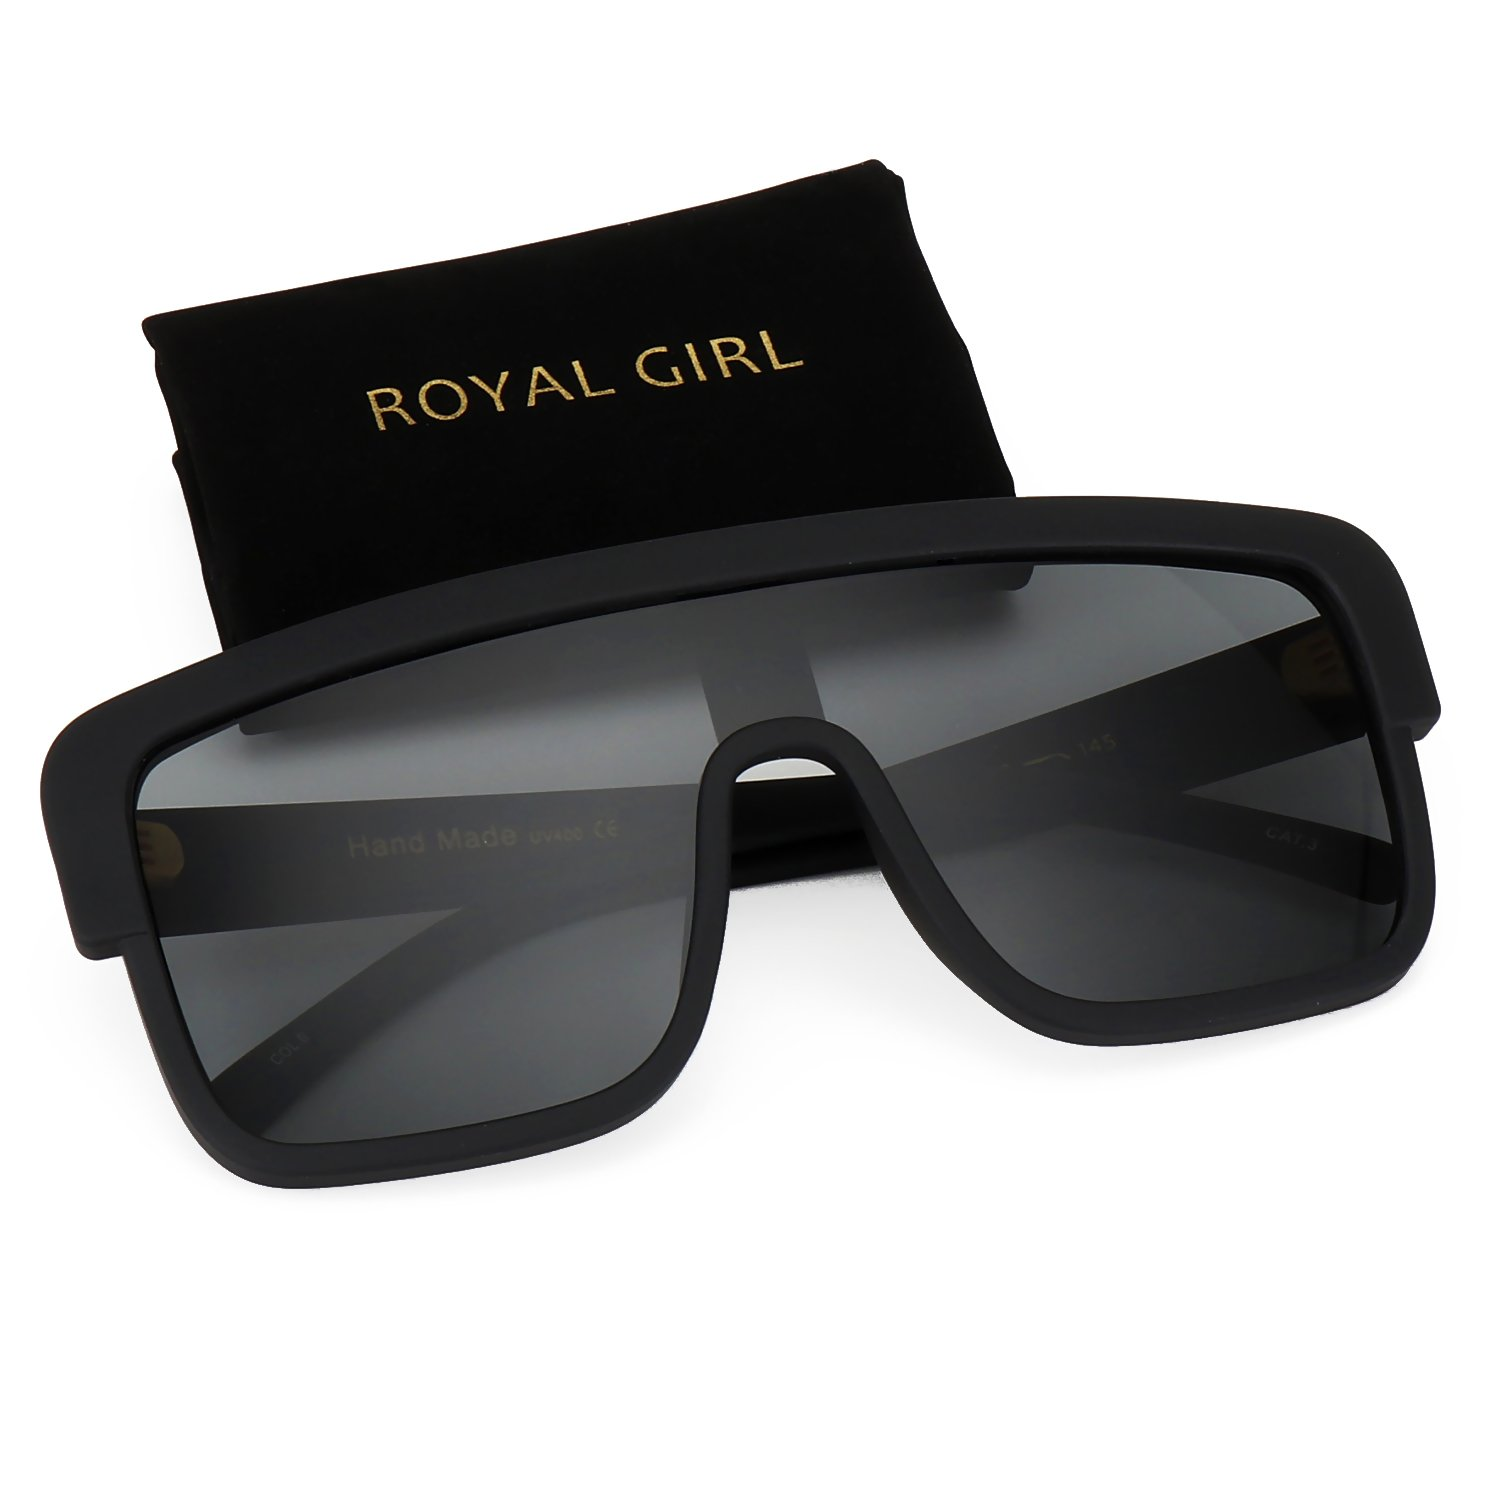 ROYAL GIRL Premium Oversized Sunglasses Women Flat Top Square Frame Shield Fashion Glasses (Matte Black, 77) by ROYAL GIRL (Image #1)